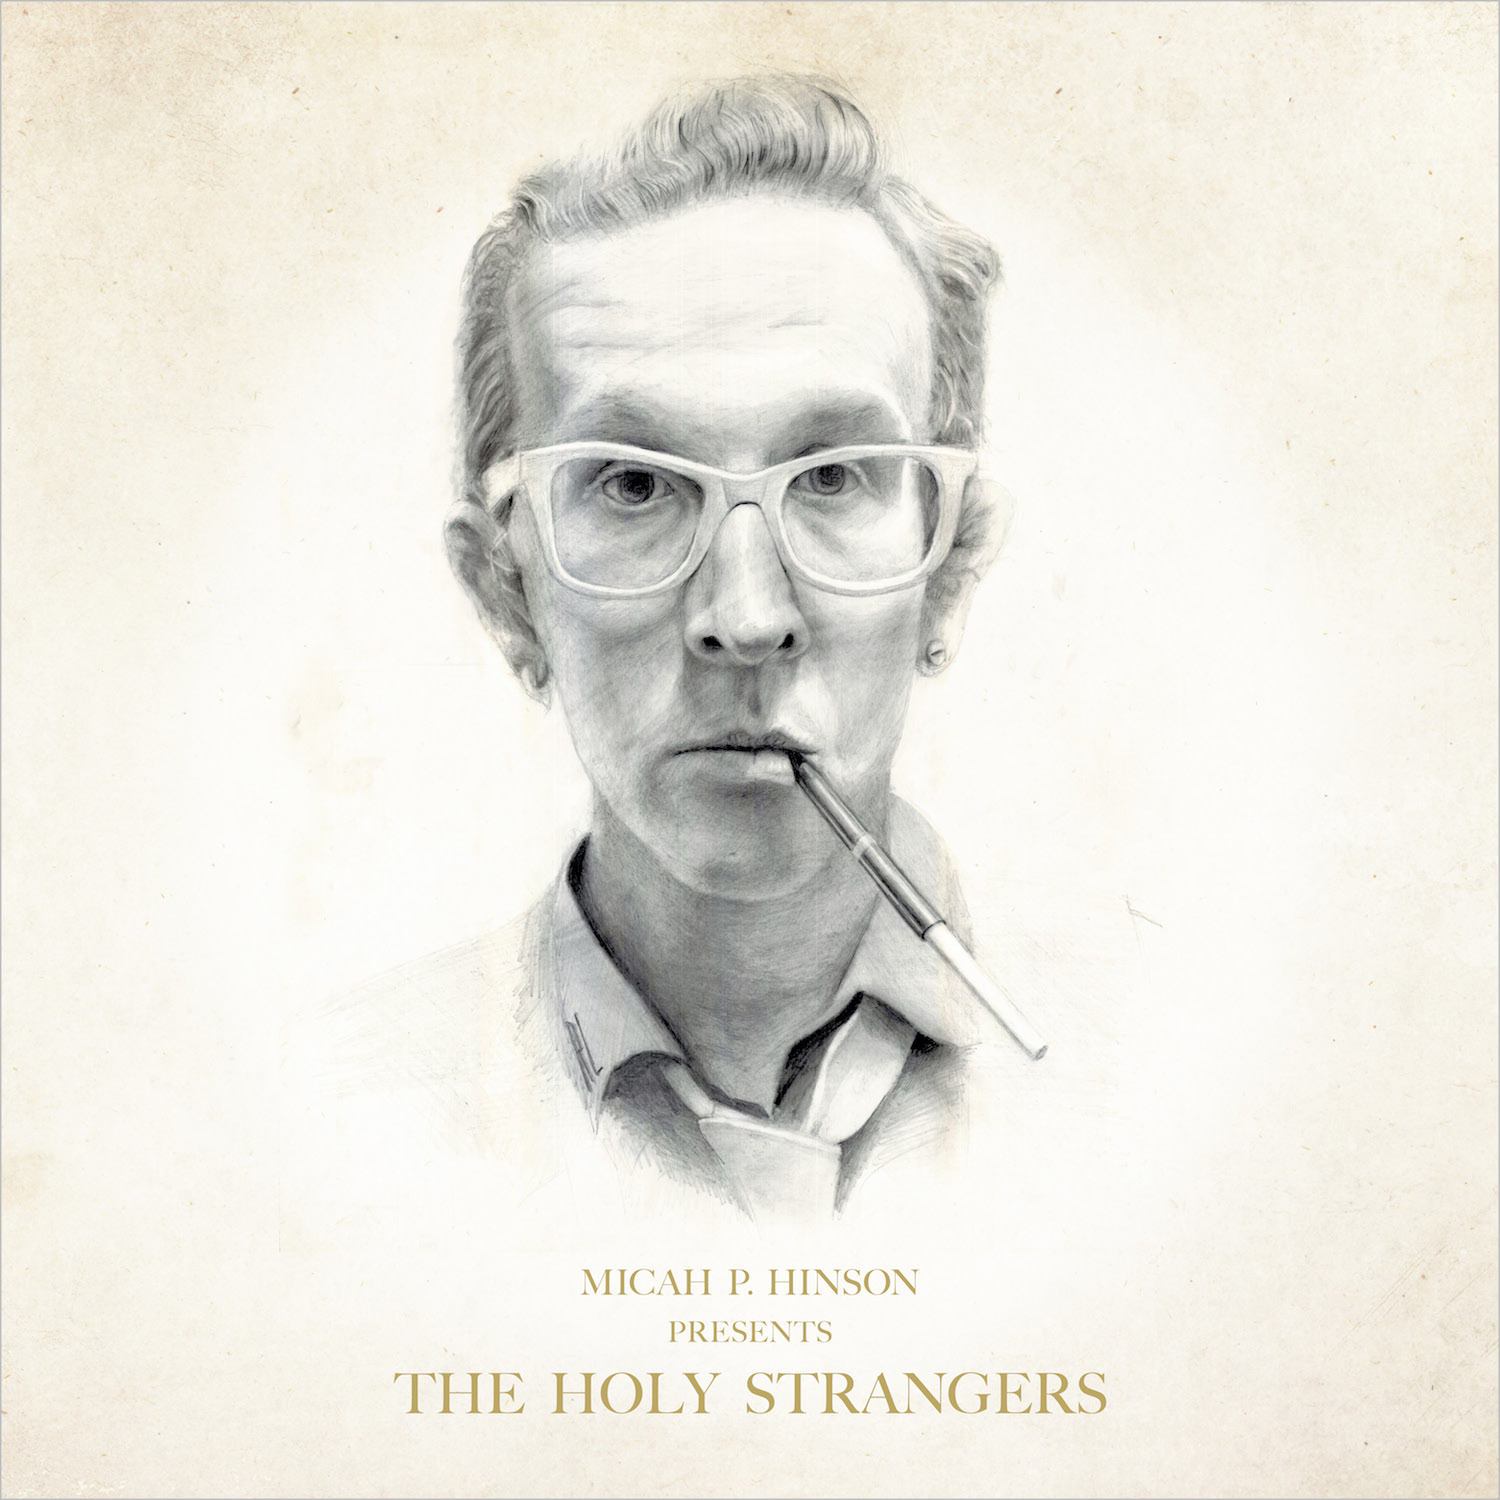 Micah P. Hinson – Presents the Holy Strangers